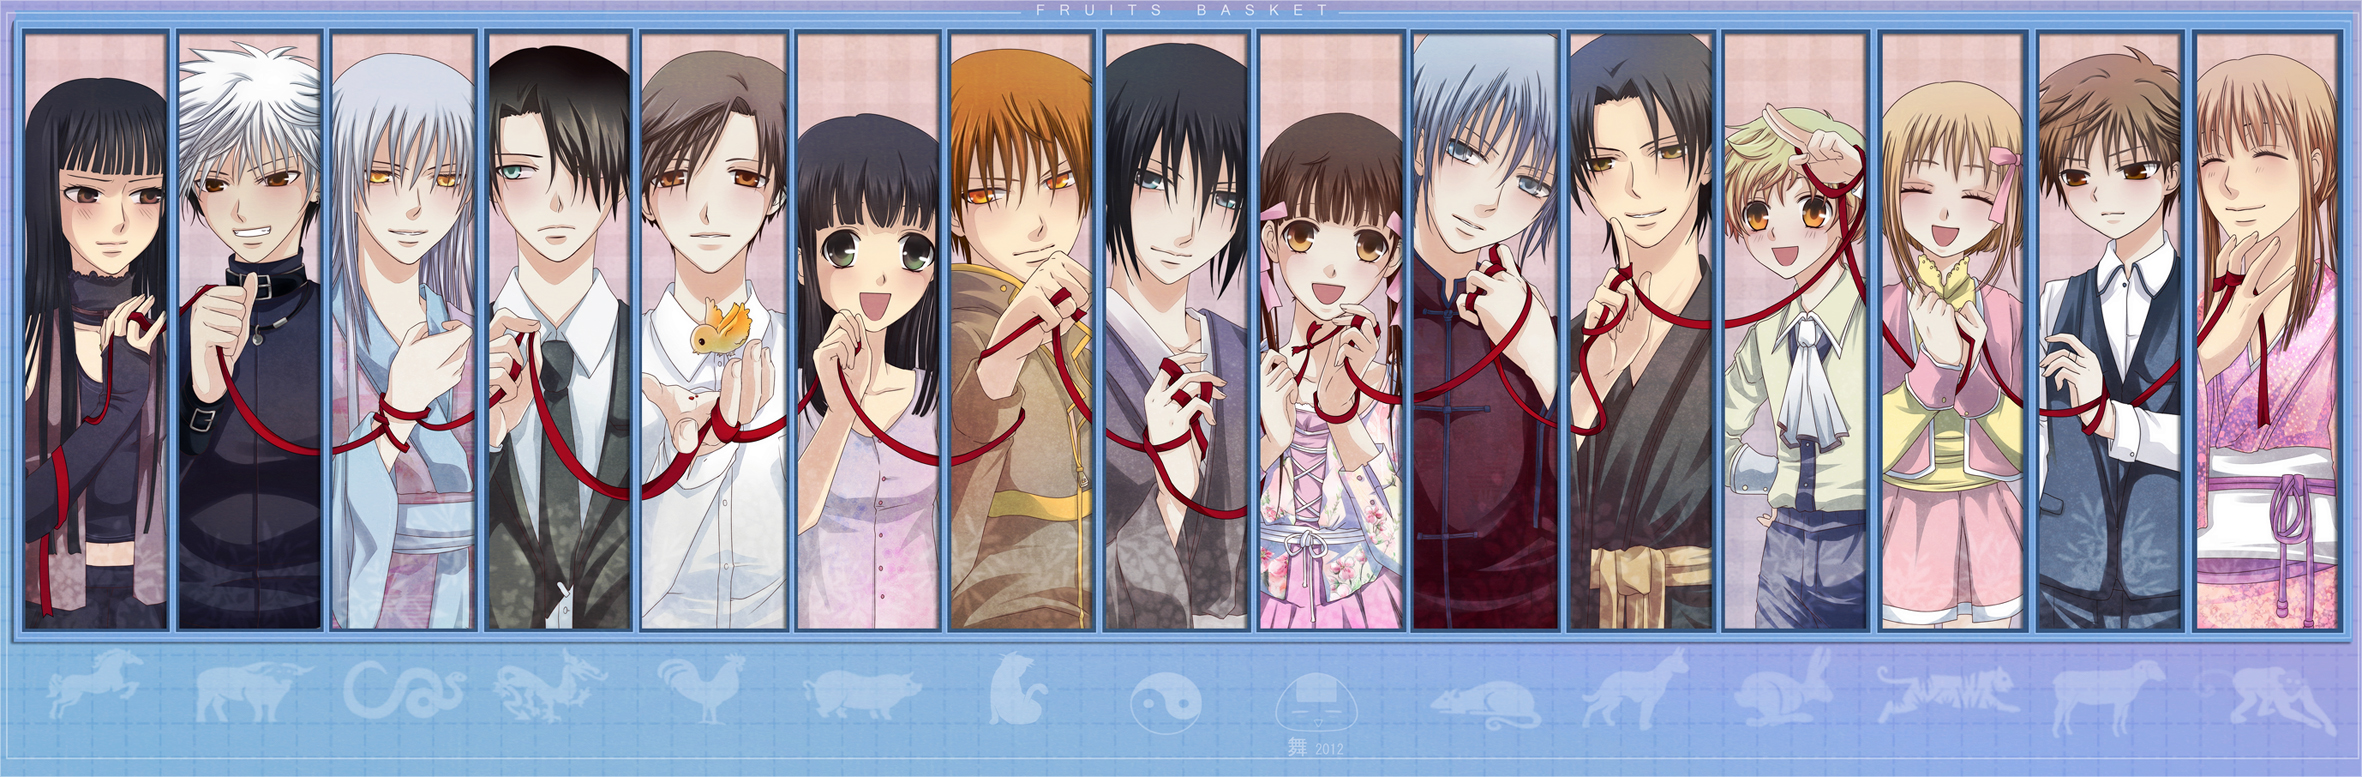 Fruits basket characters with pictures